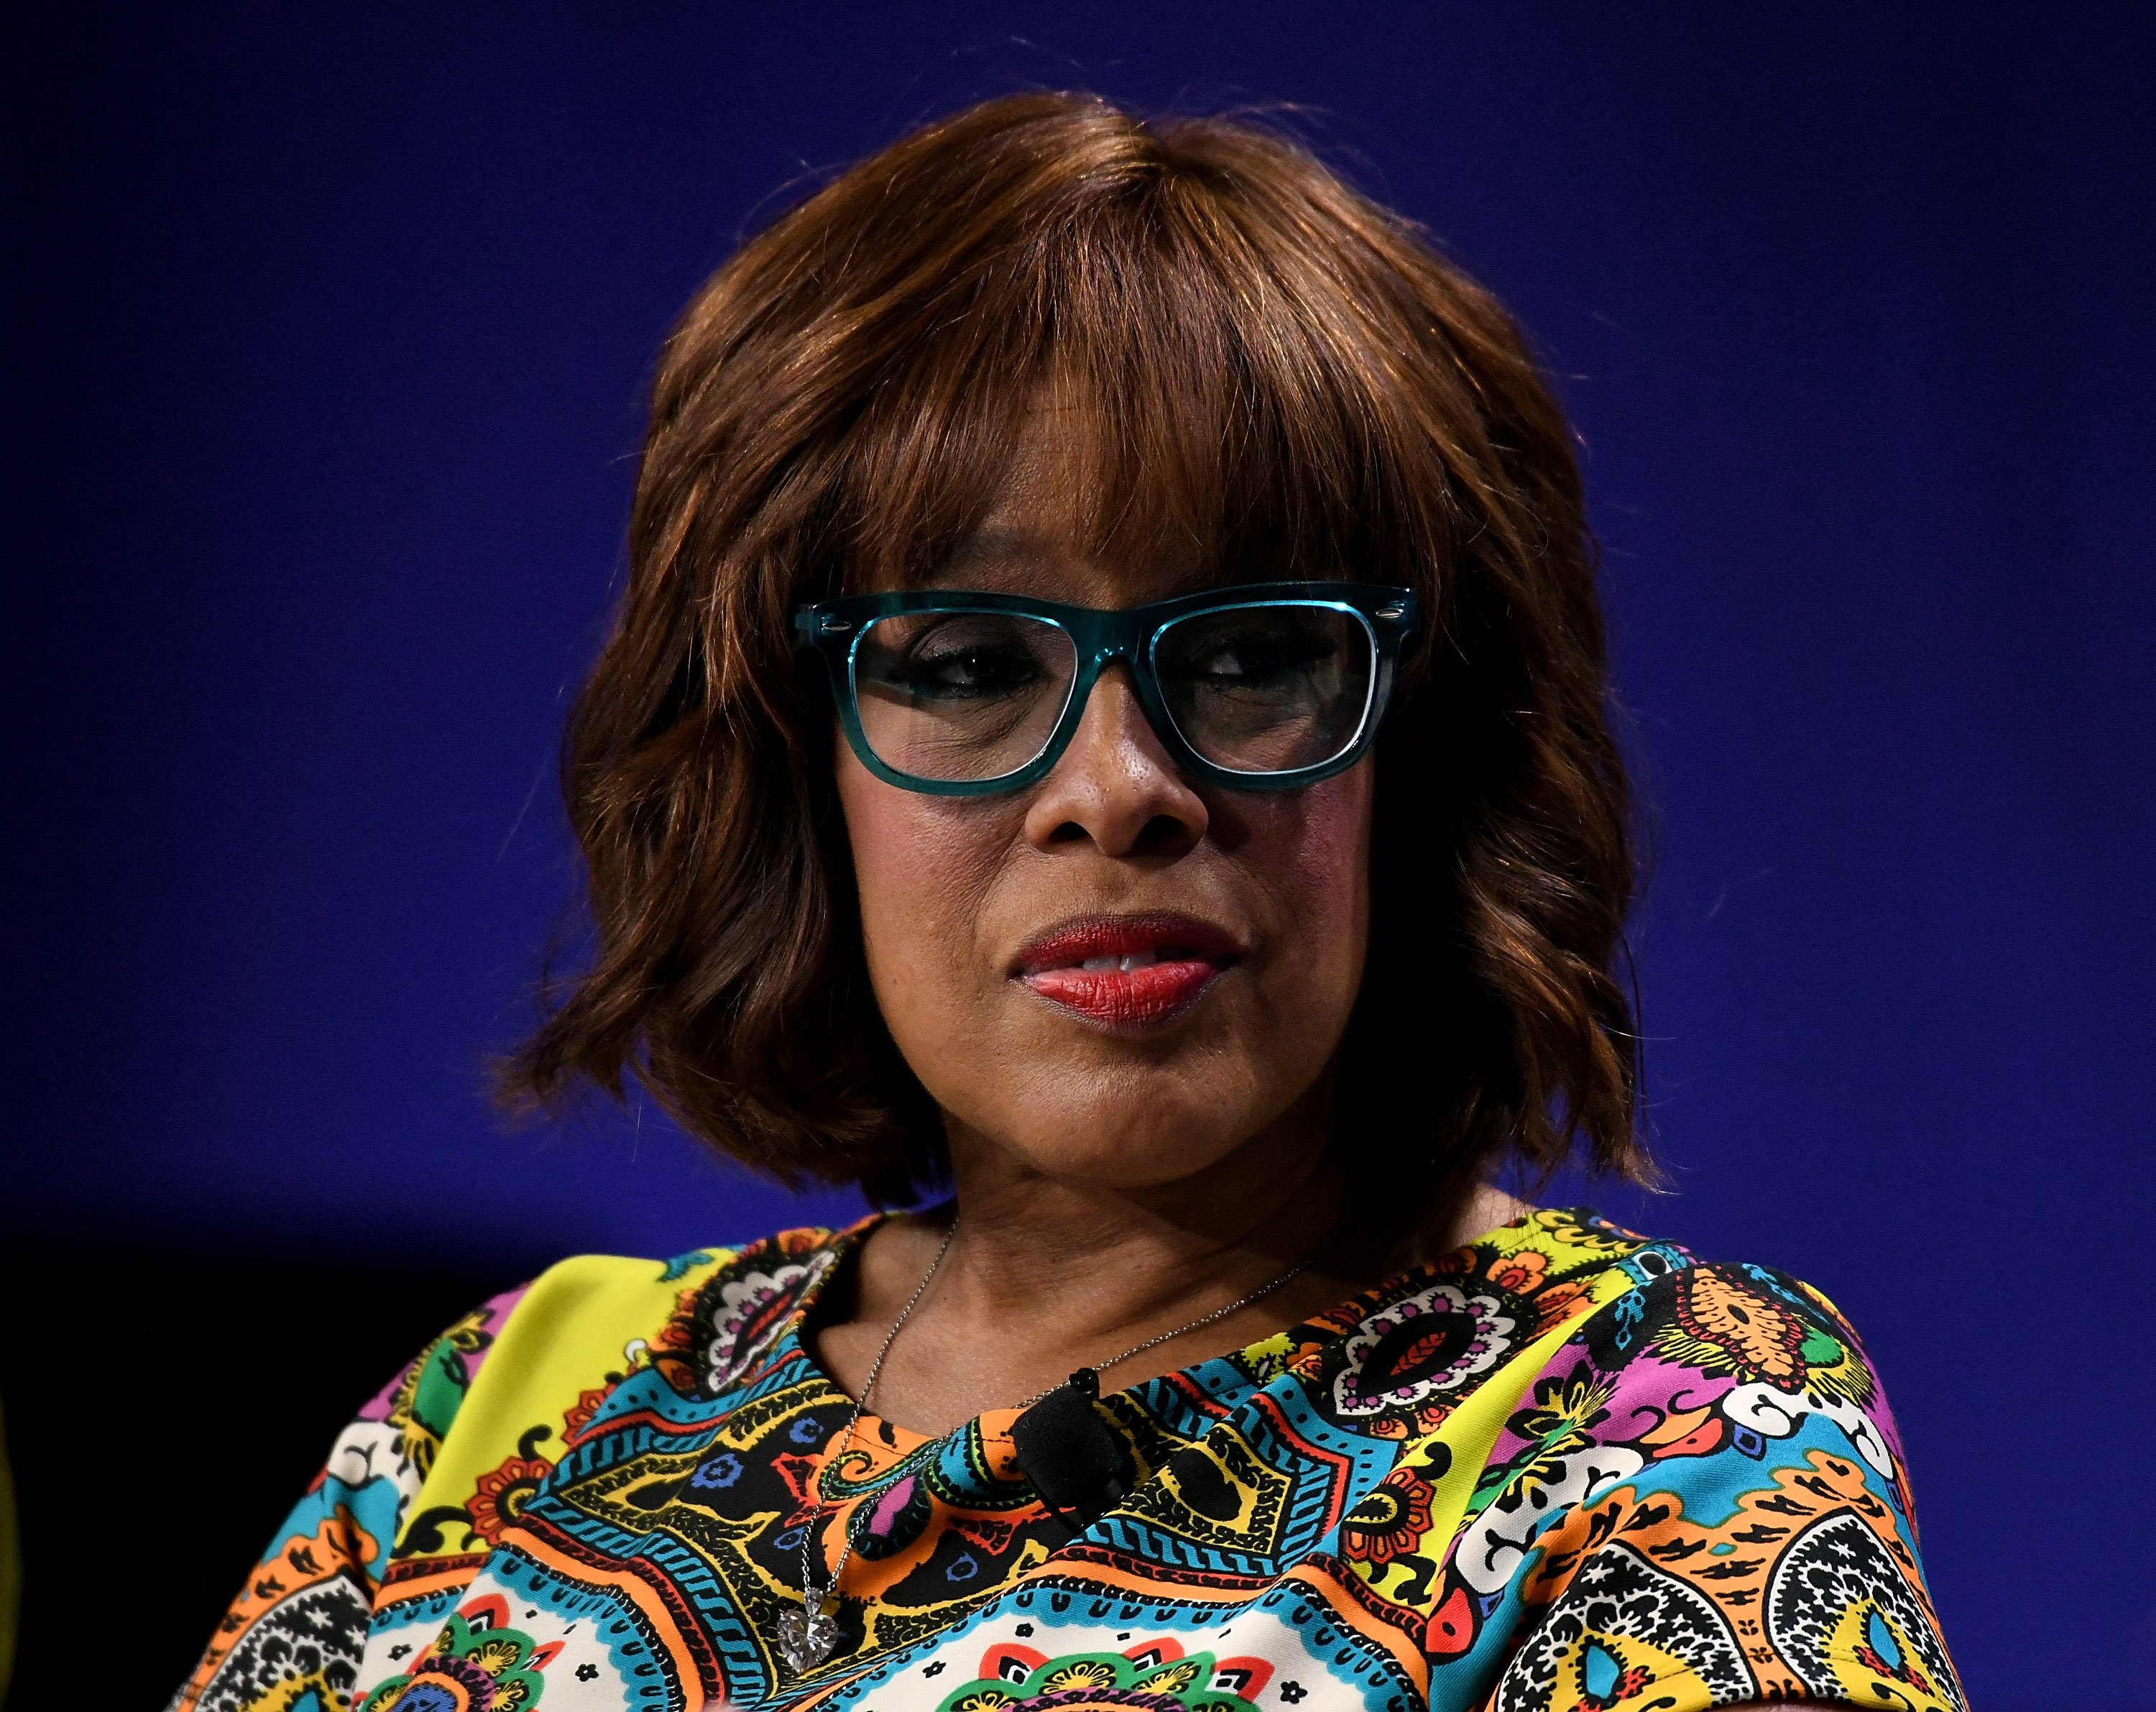 Gayle King participates in a panel discussion during the annual Milken Institute Global Conference at The Beverly Hilton Hotel on April 29, 2019 in Beverly Hills, California   Photo: Getty Images